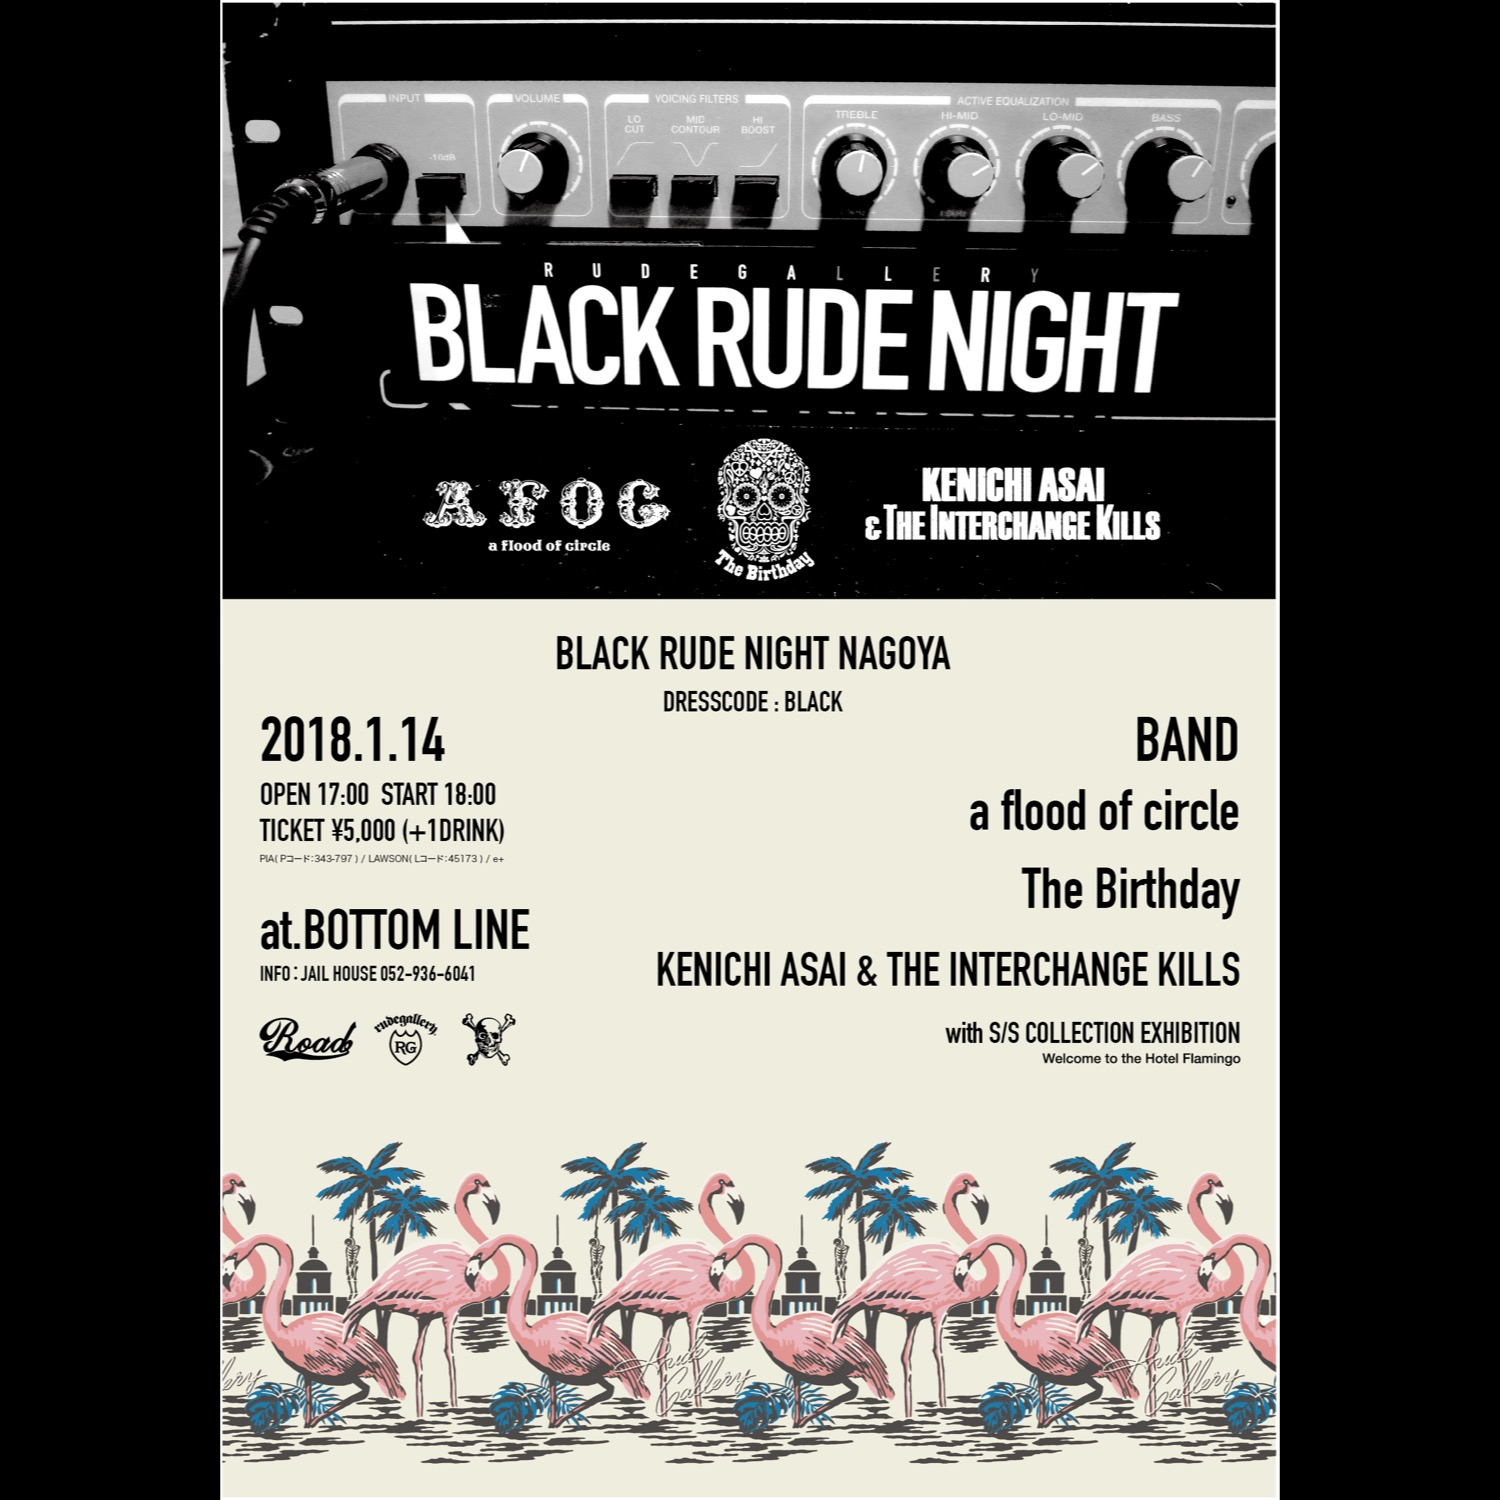 BLACK RUDE NIGHT NAGOYA